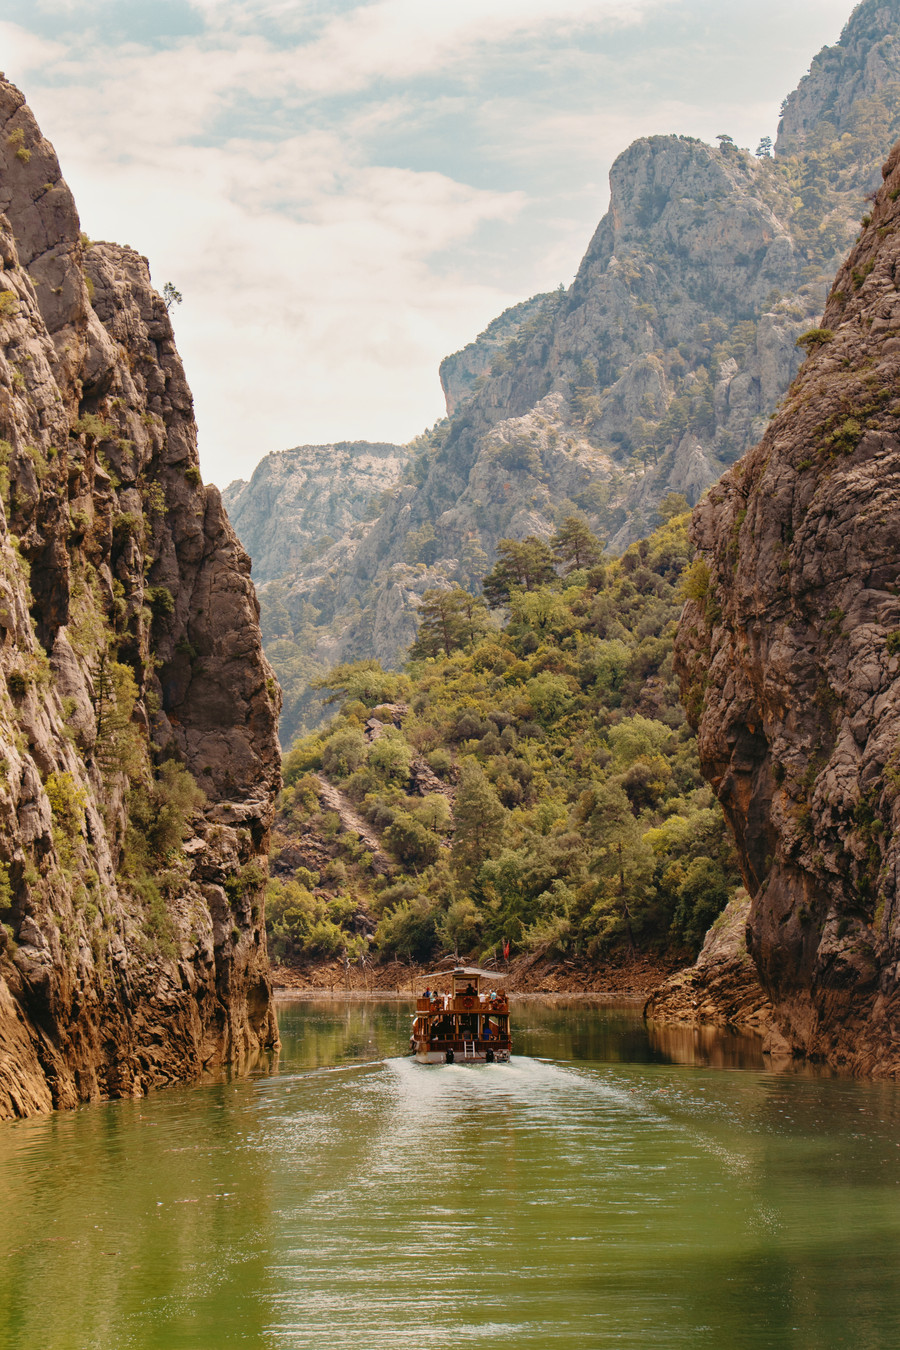 The Green Canyon, Manavgat #1